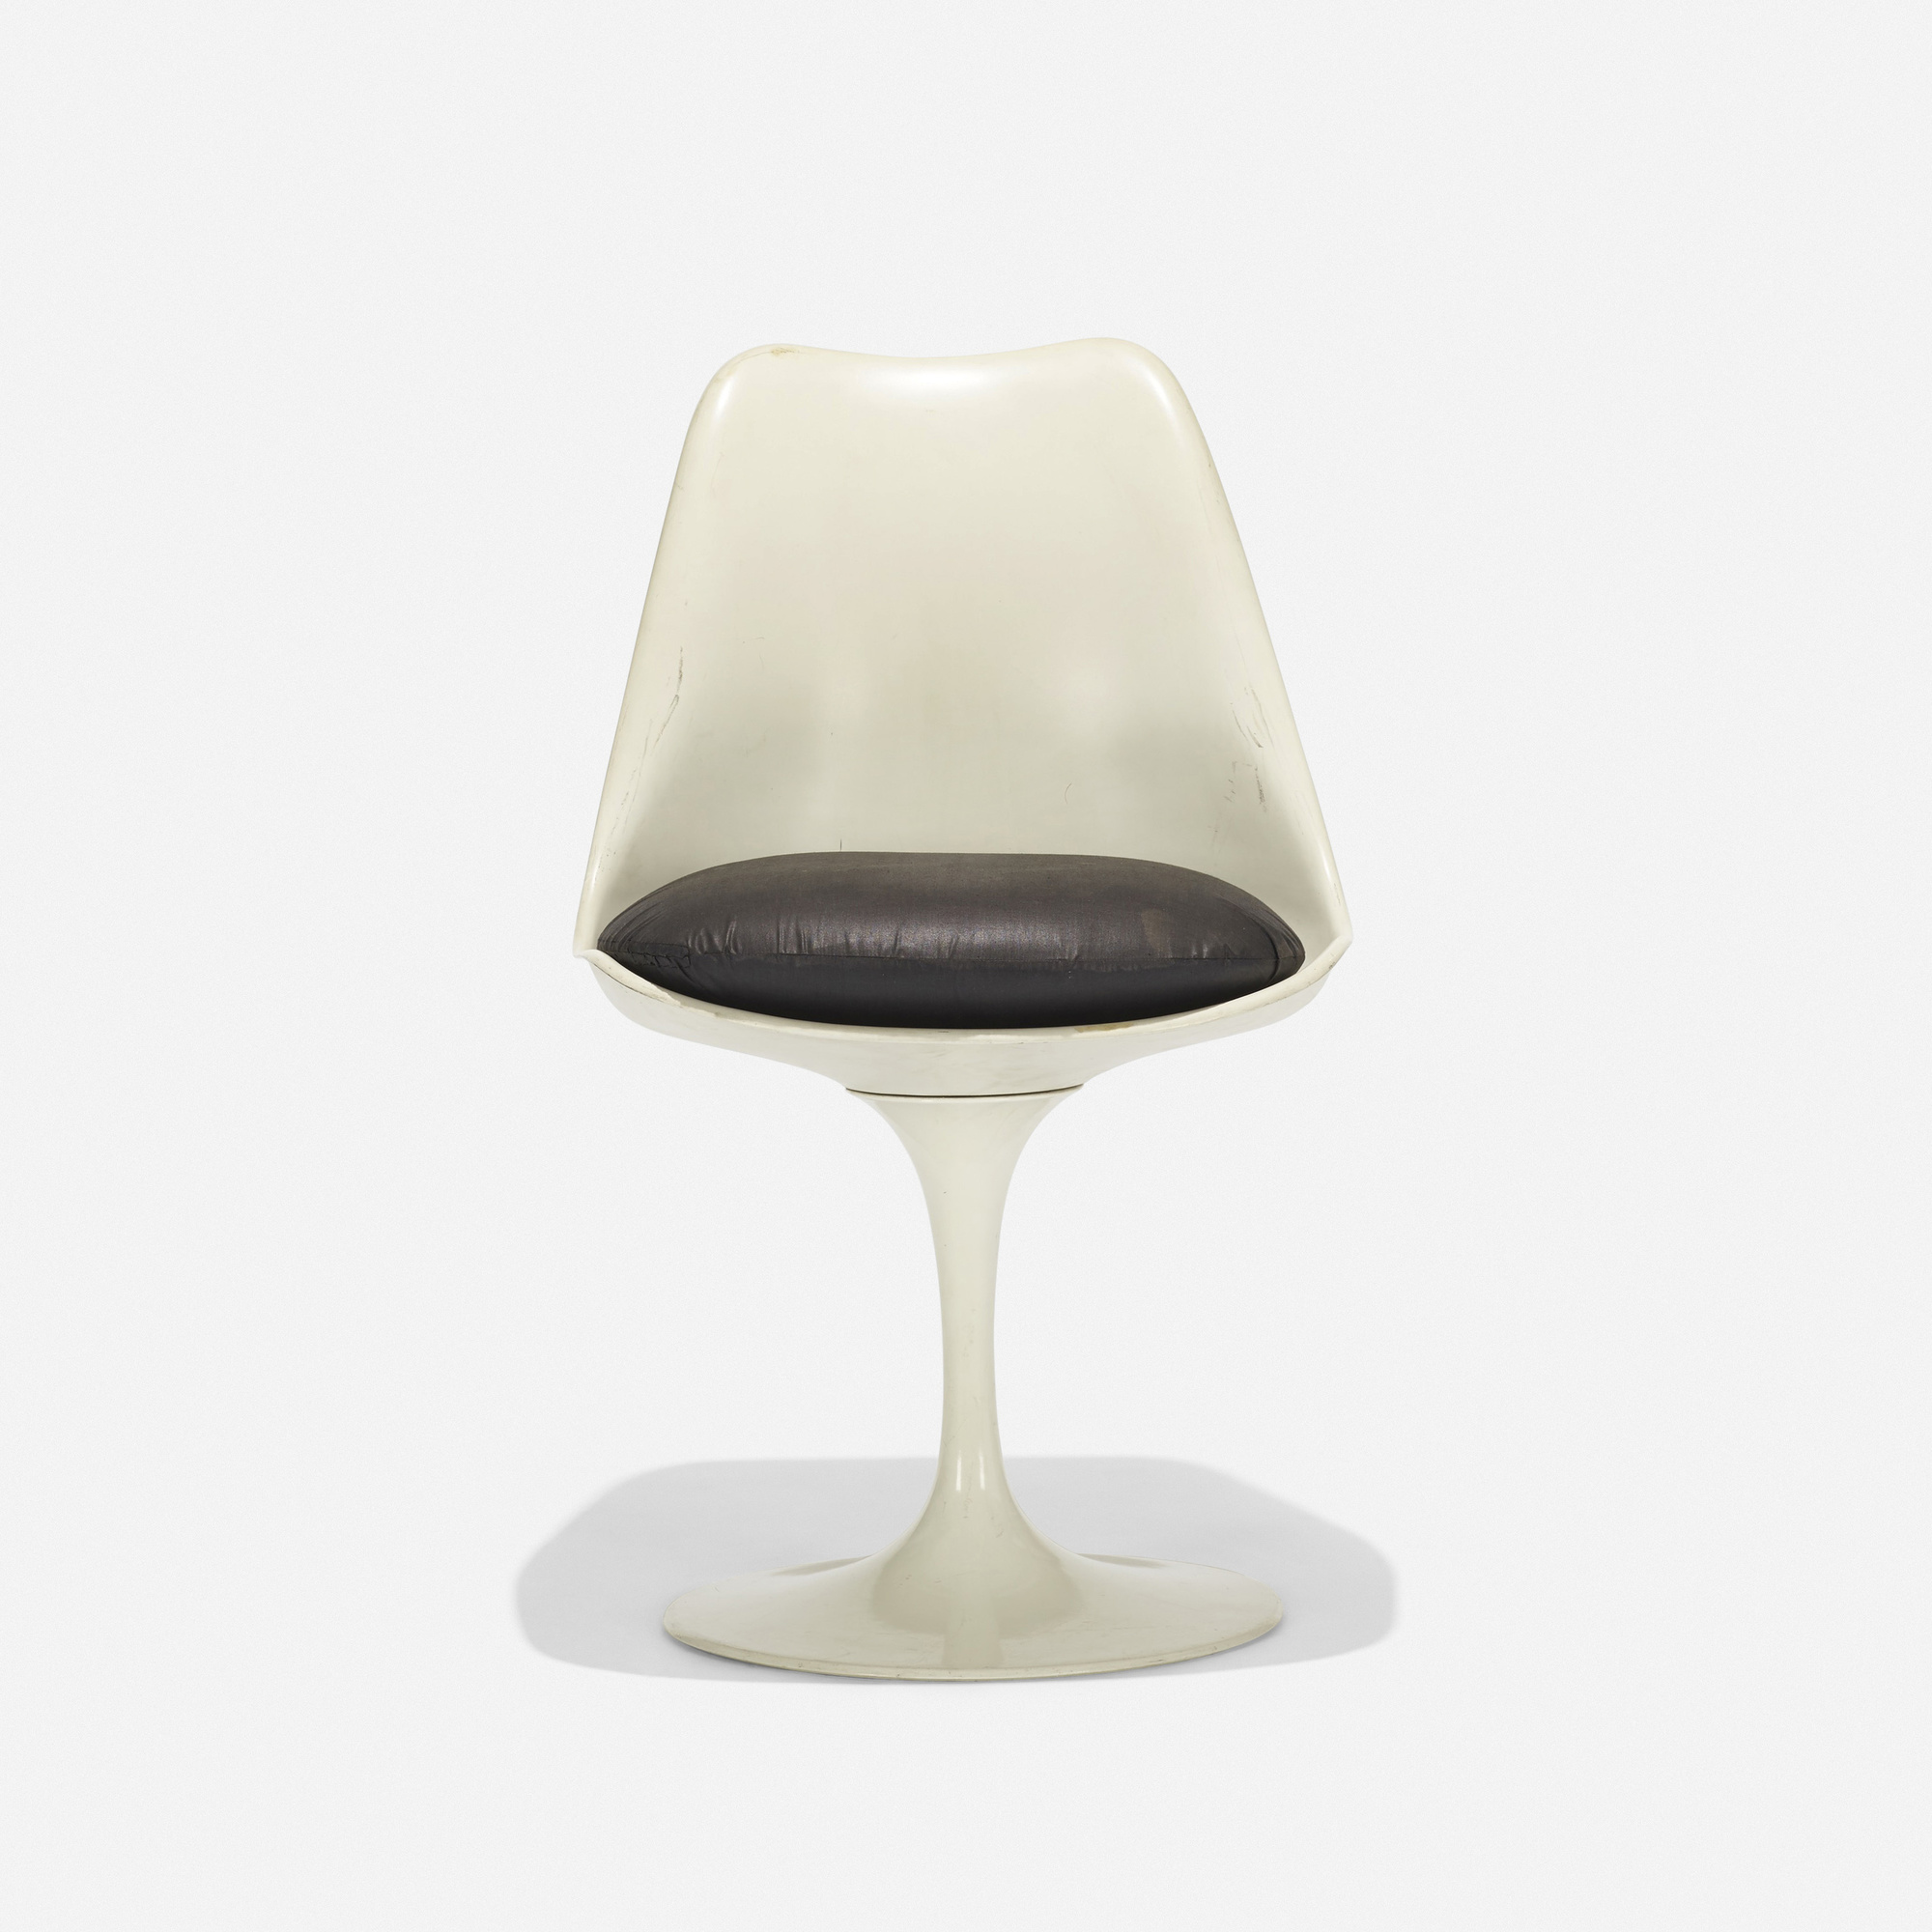 121: Eero Saarinen / Tulip chair (2 of 3)